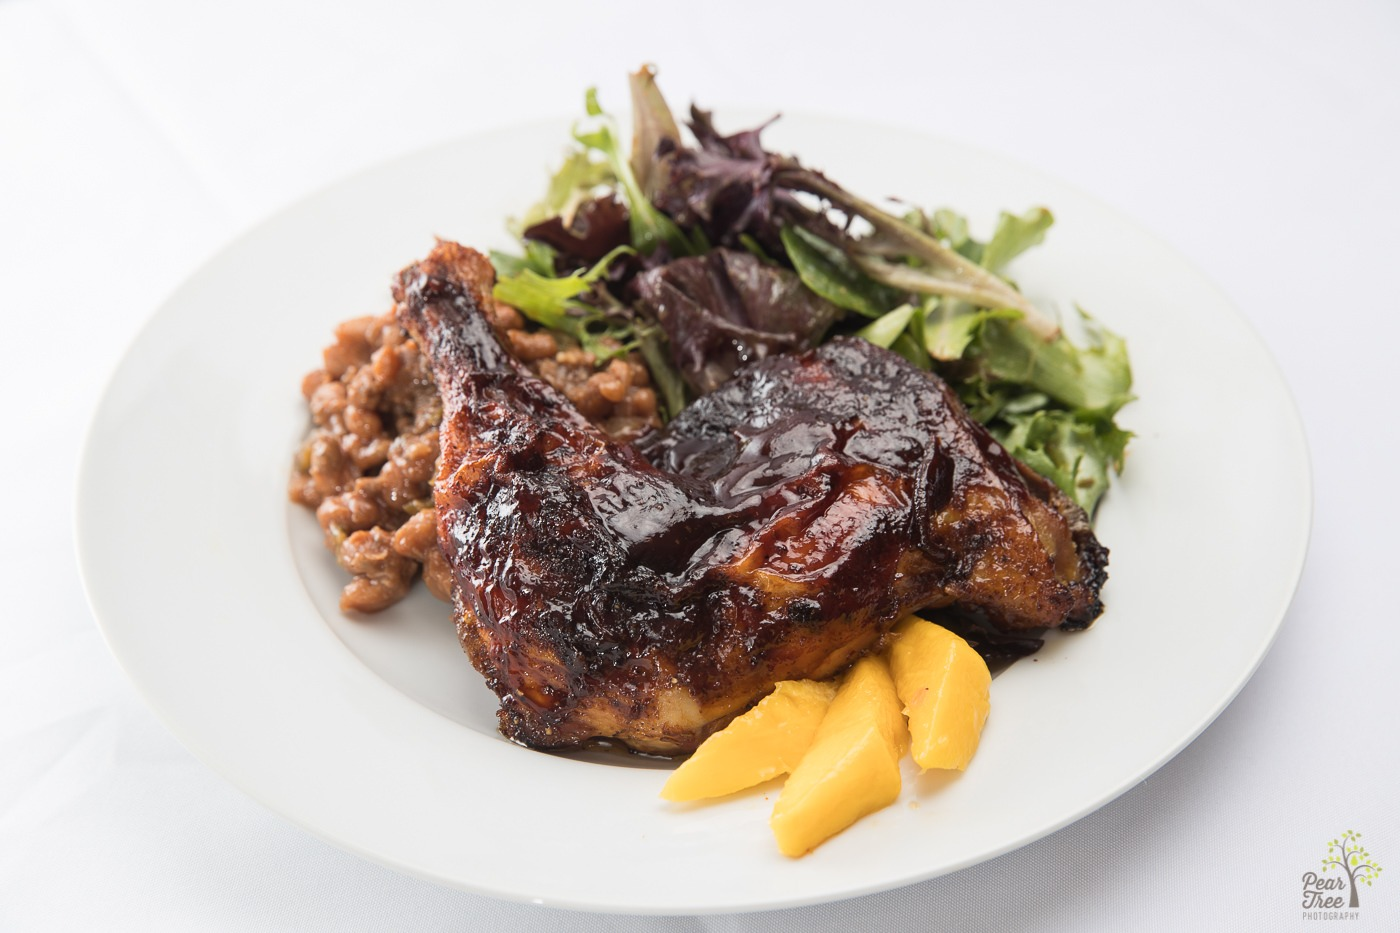 Barbecued chicken with baked beans, spring mix salad, and mango slices made by Divine Taste of Heaven.